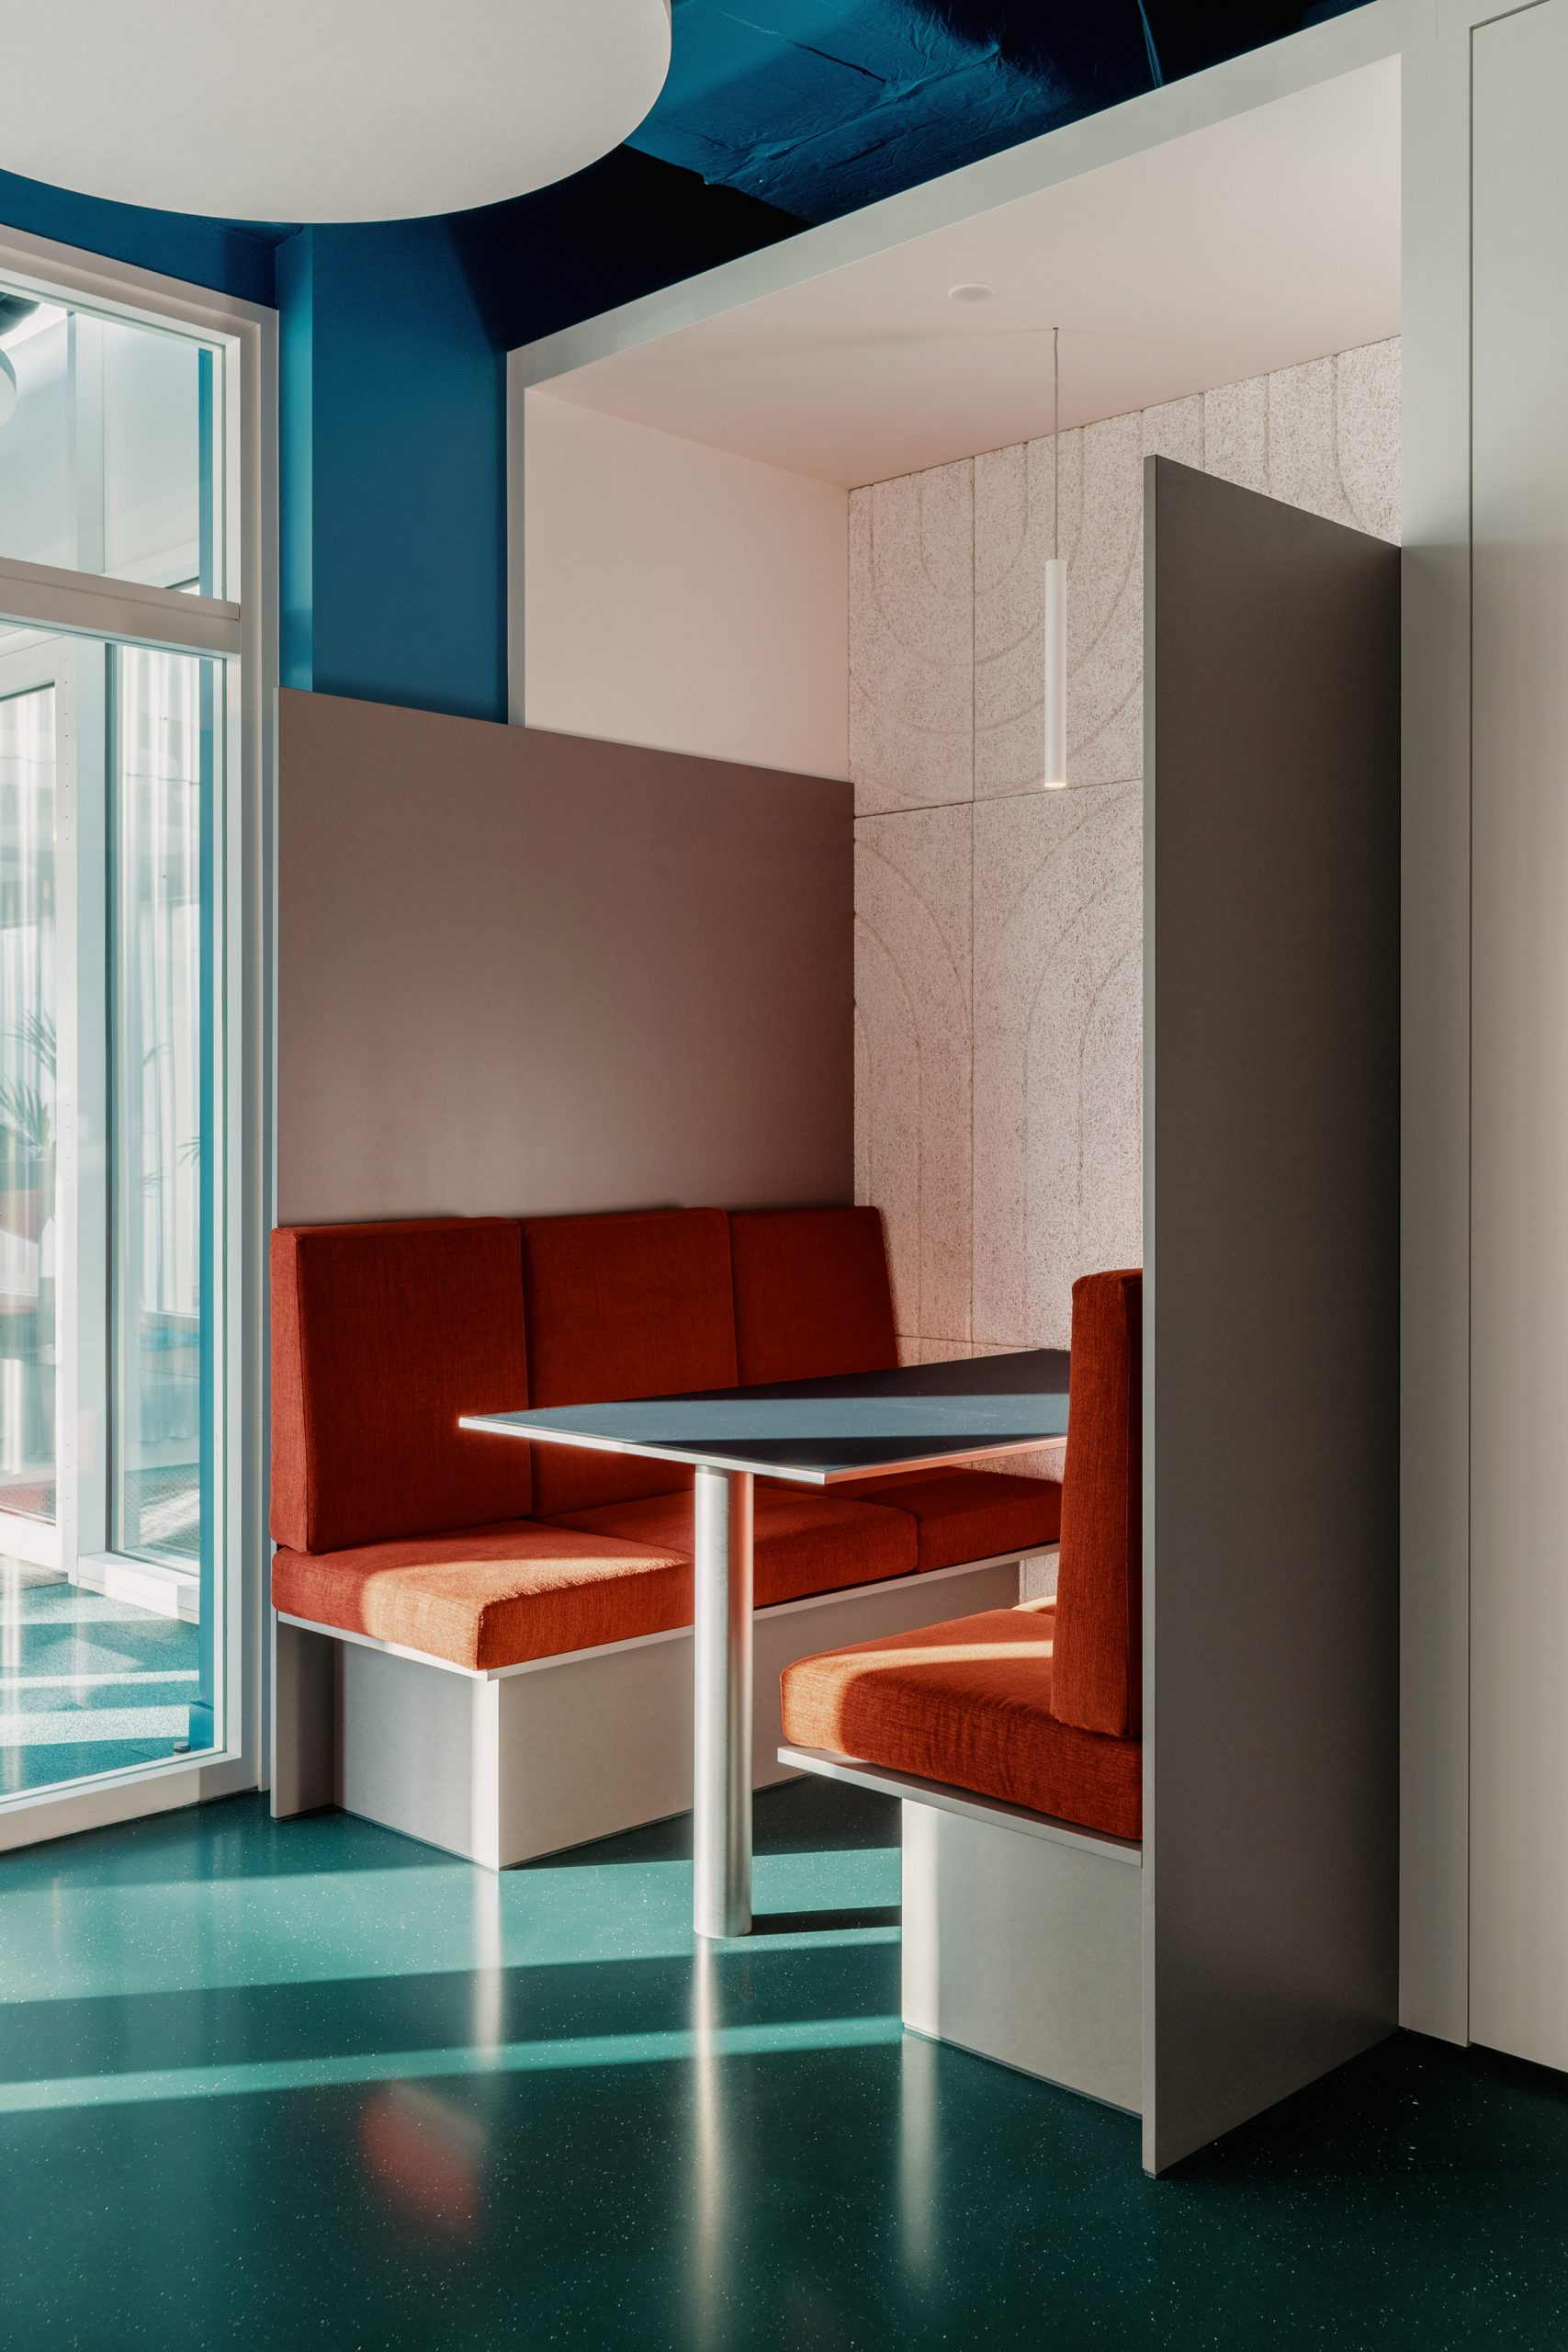 Chairs are upholstered in the company's orange